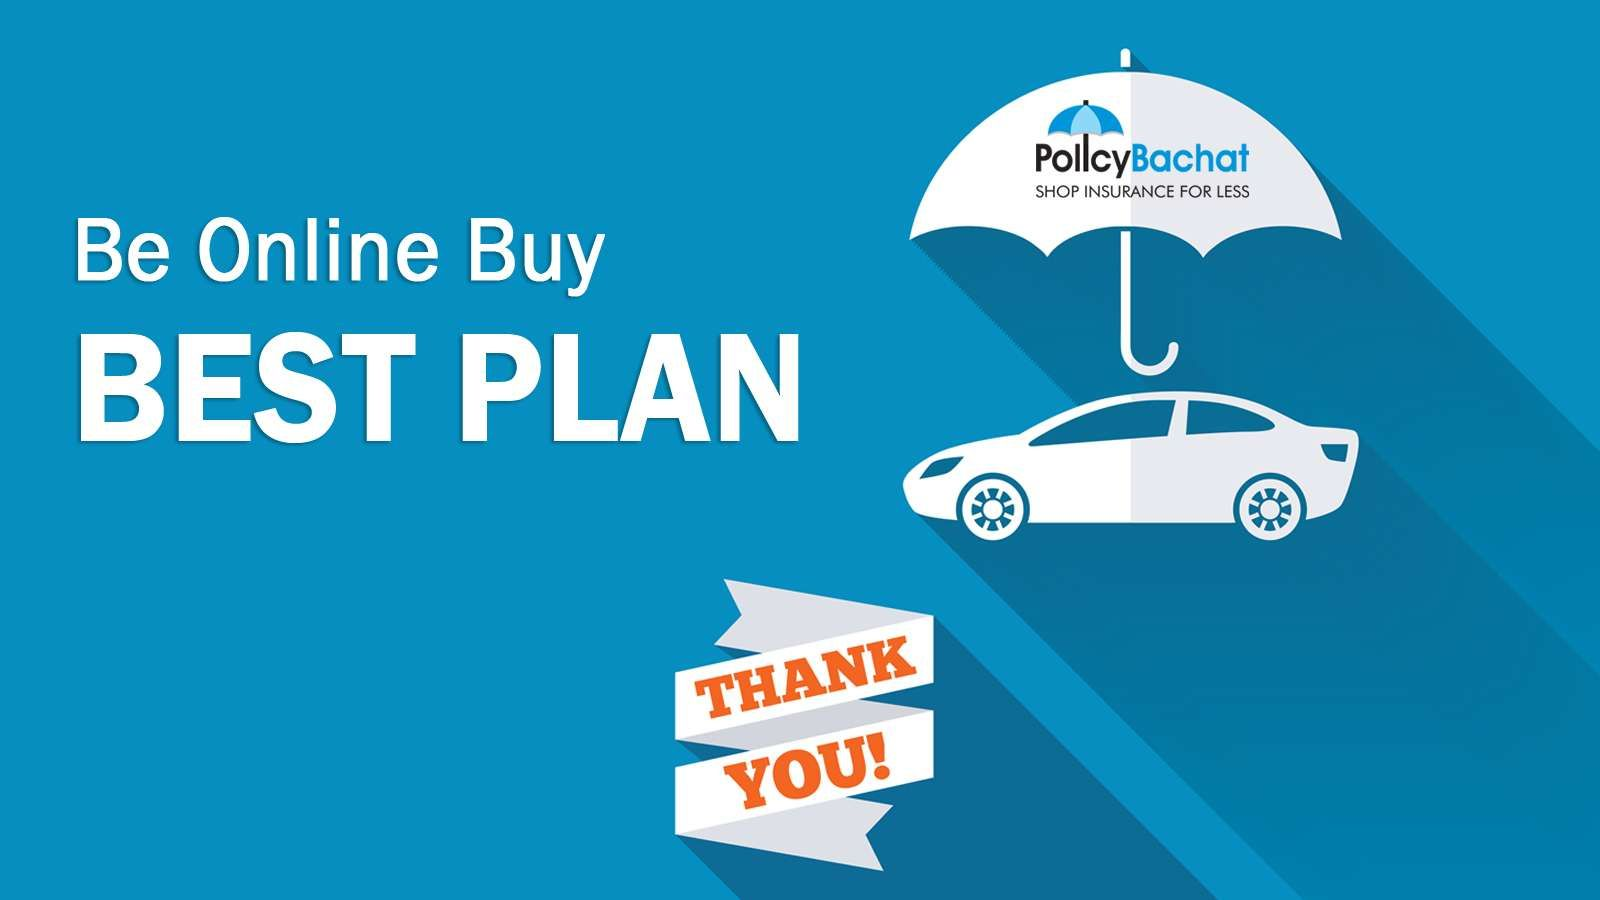 Compare Car Insurance Online Before Buying The Policy Comparison Helps You To Judge The Right Policy Compare Car Insurance Car Insurance Online Car Insurance